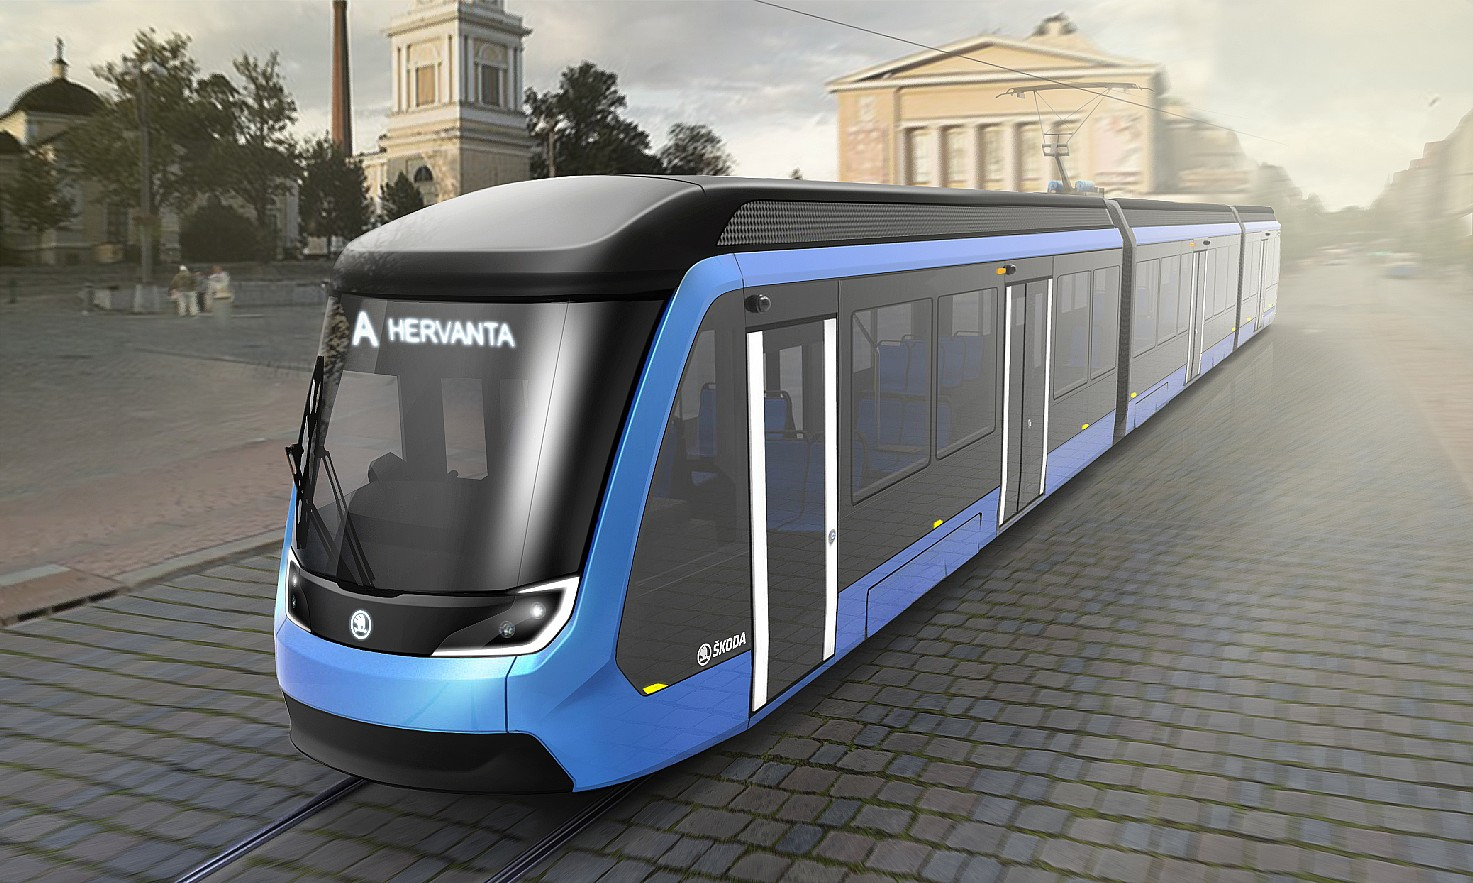 [FI] Skoda's Transtech Oy sells LRVs to Tampere, the third city of Finland